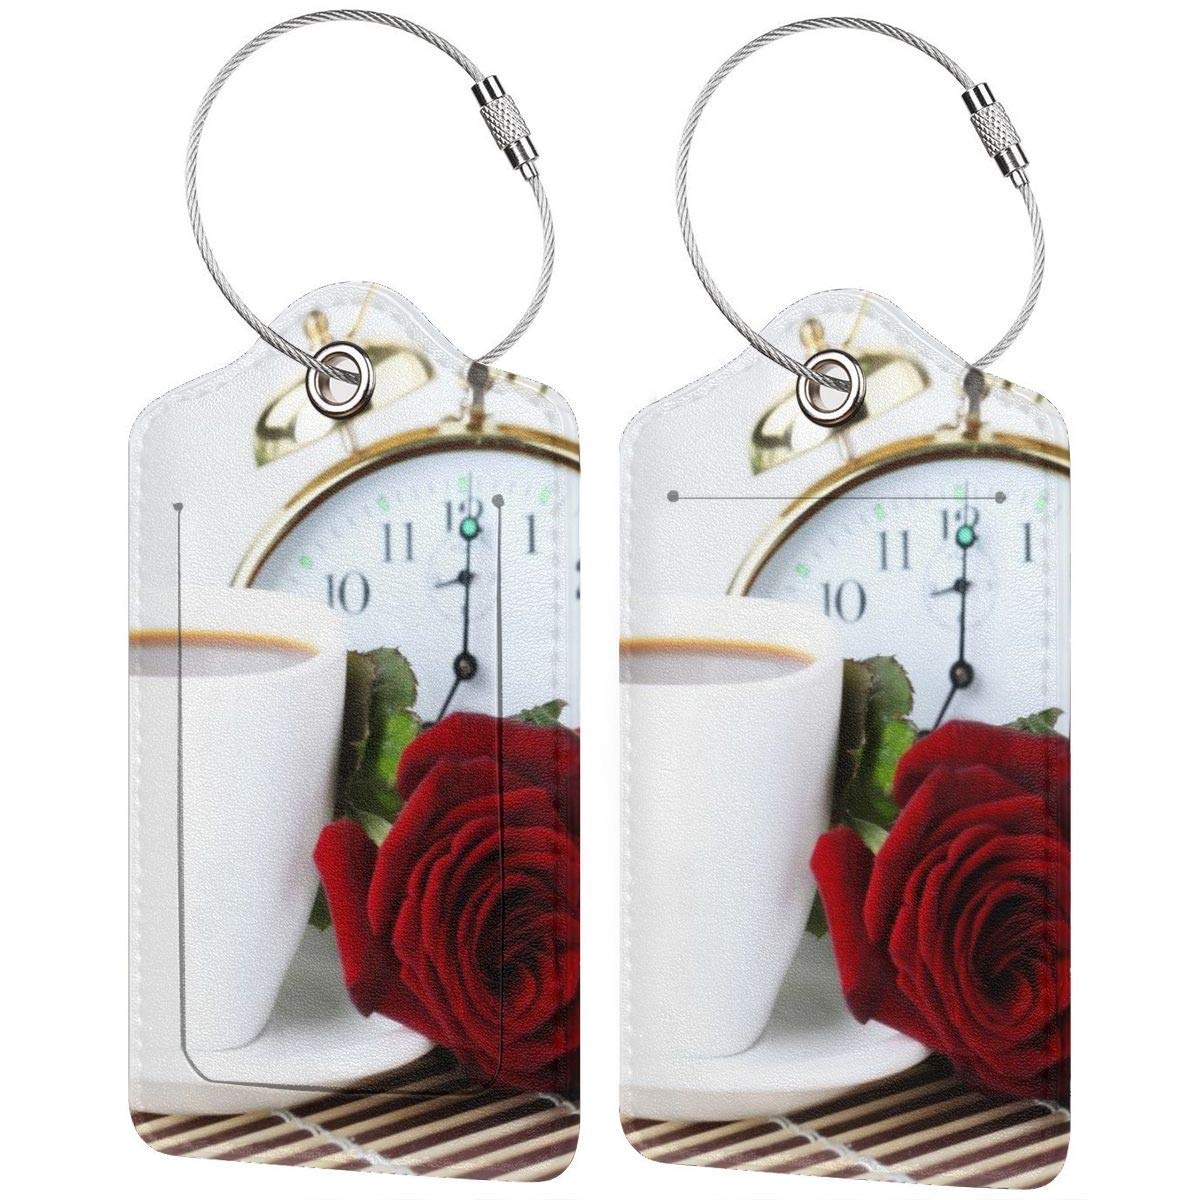 Coffee Morning Luggage Tag Label Travel Bag Label With Privacy Cover Luggage Tag Leather Personalized Suitcase Tag Travel Accessories